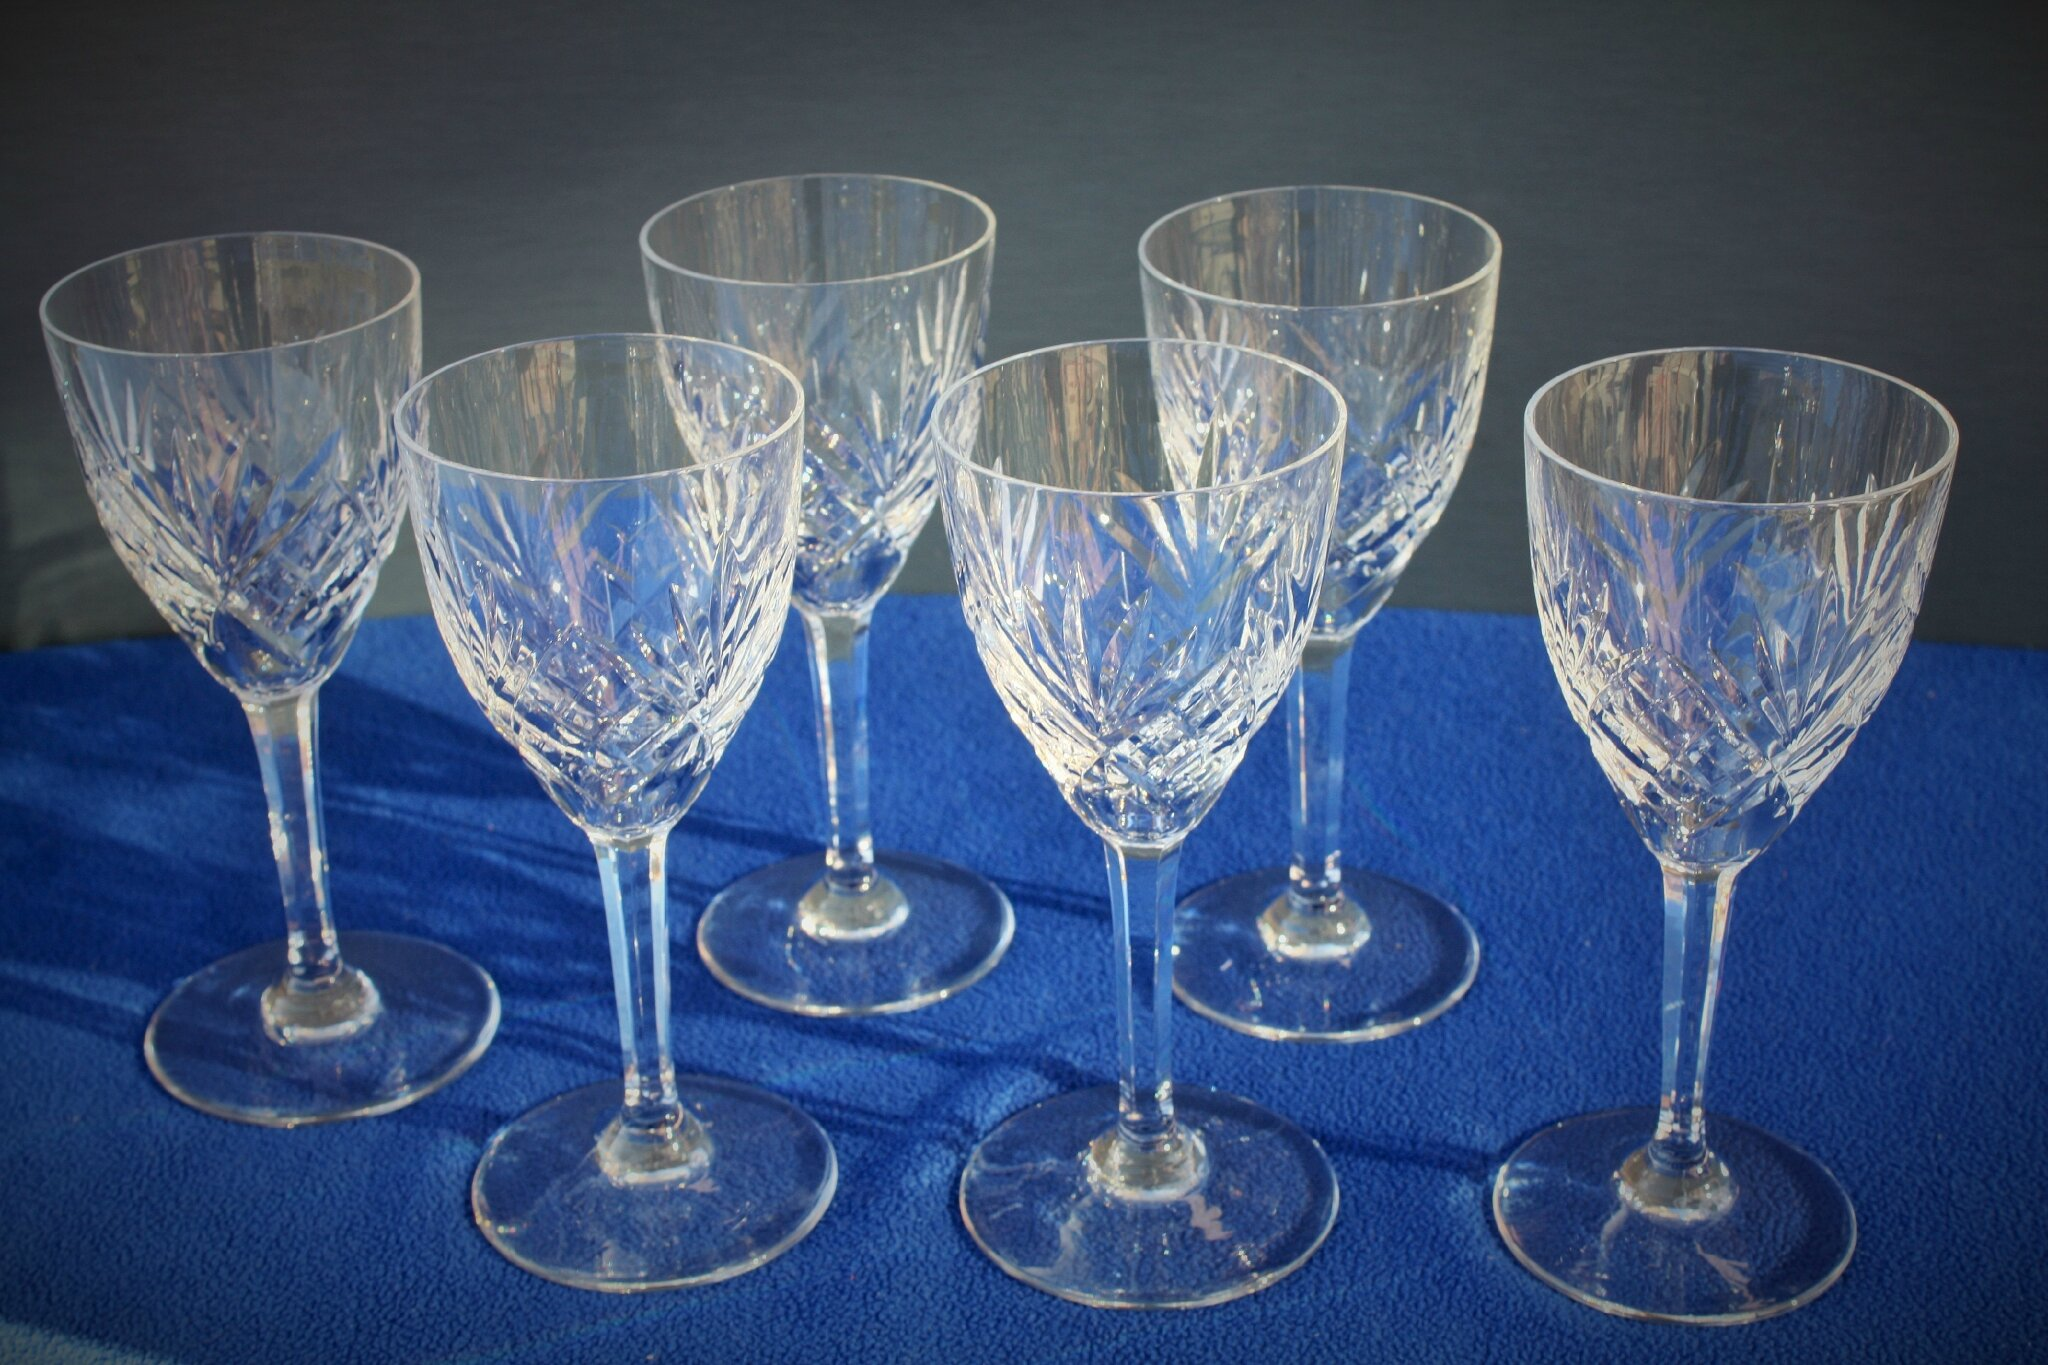 Service saint louis chantilly antiques20 me - Verre saint louis prix ...